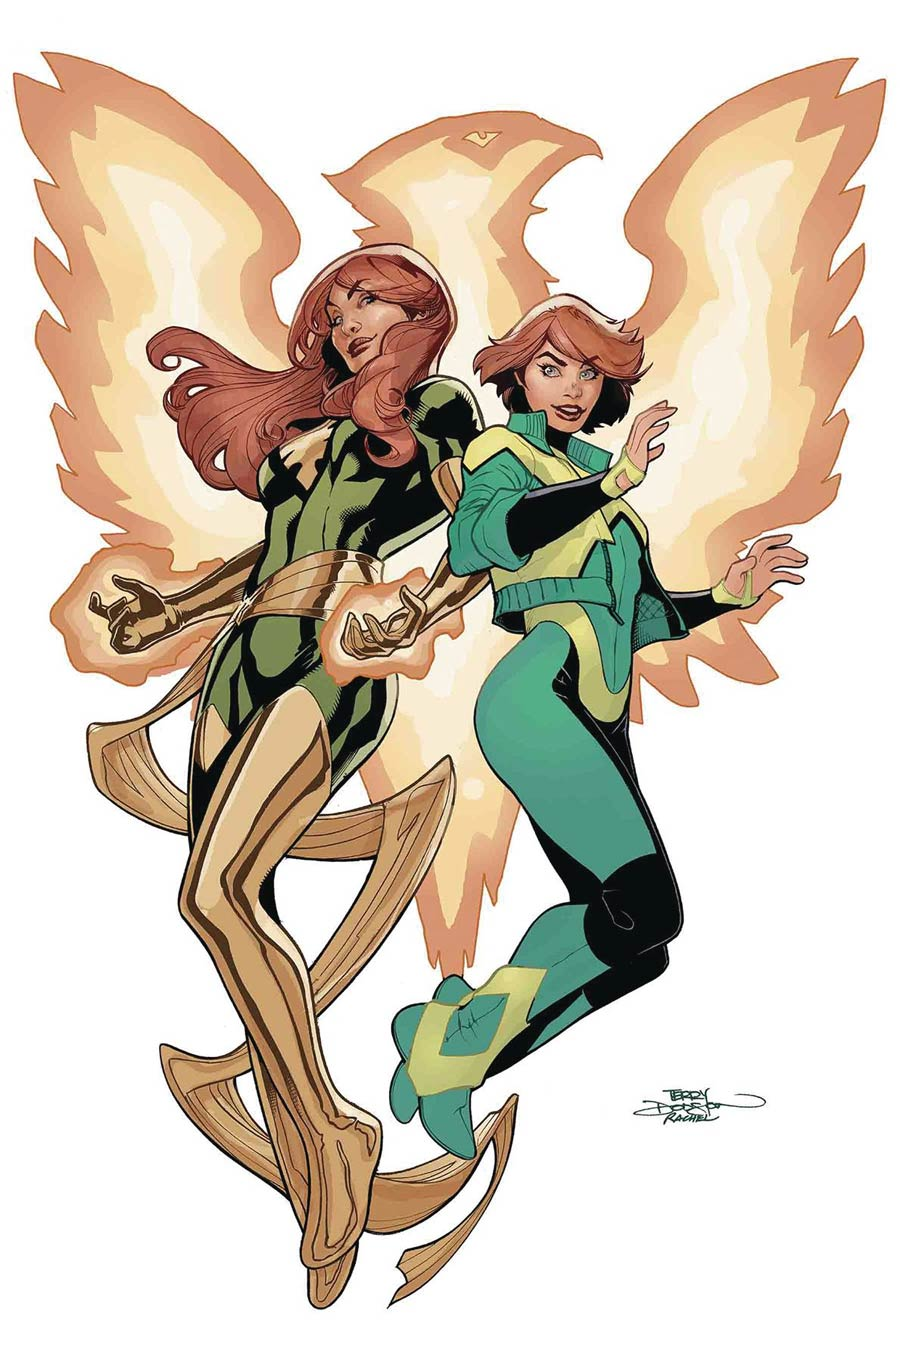 'Generations: Phoenix and Jean Grey' #1 reviewed in this week's episode of CASUAL WEDNESDAYS